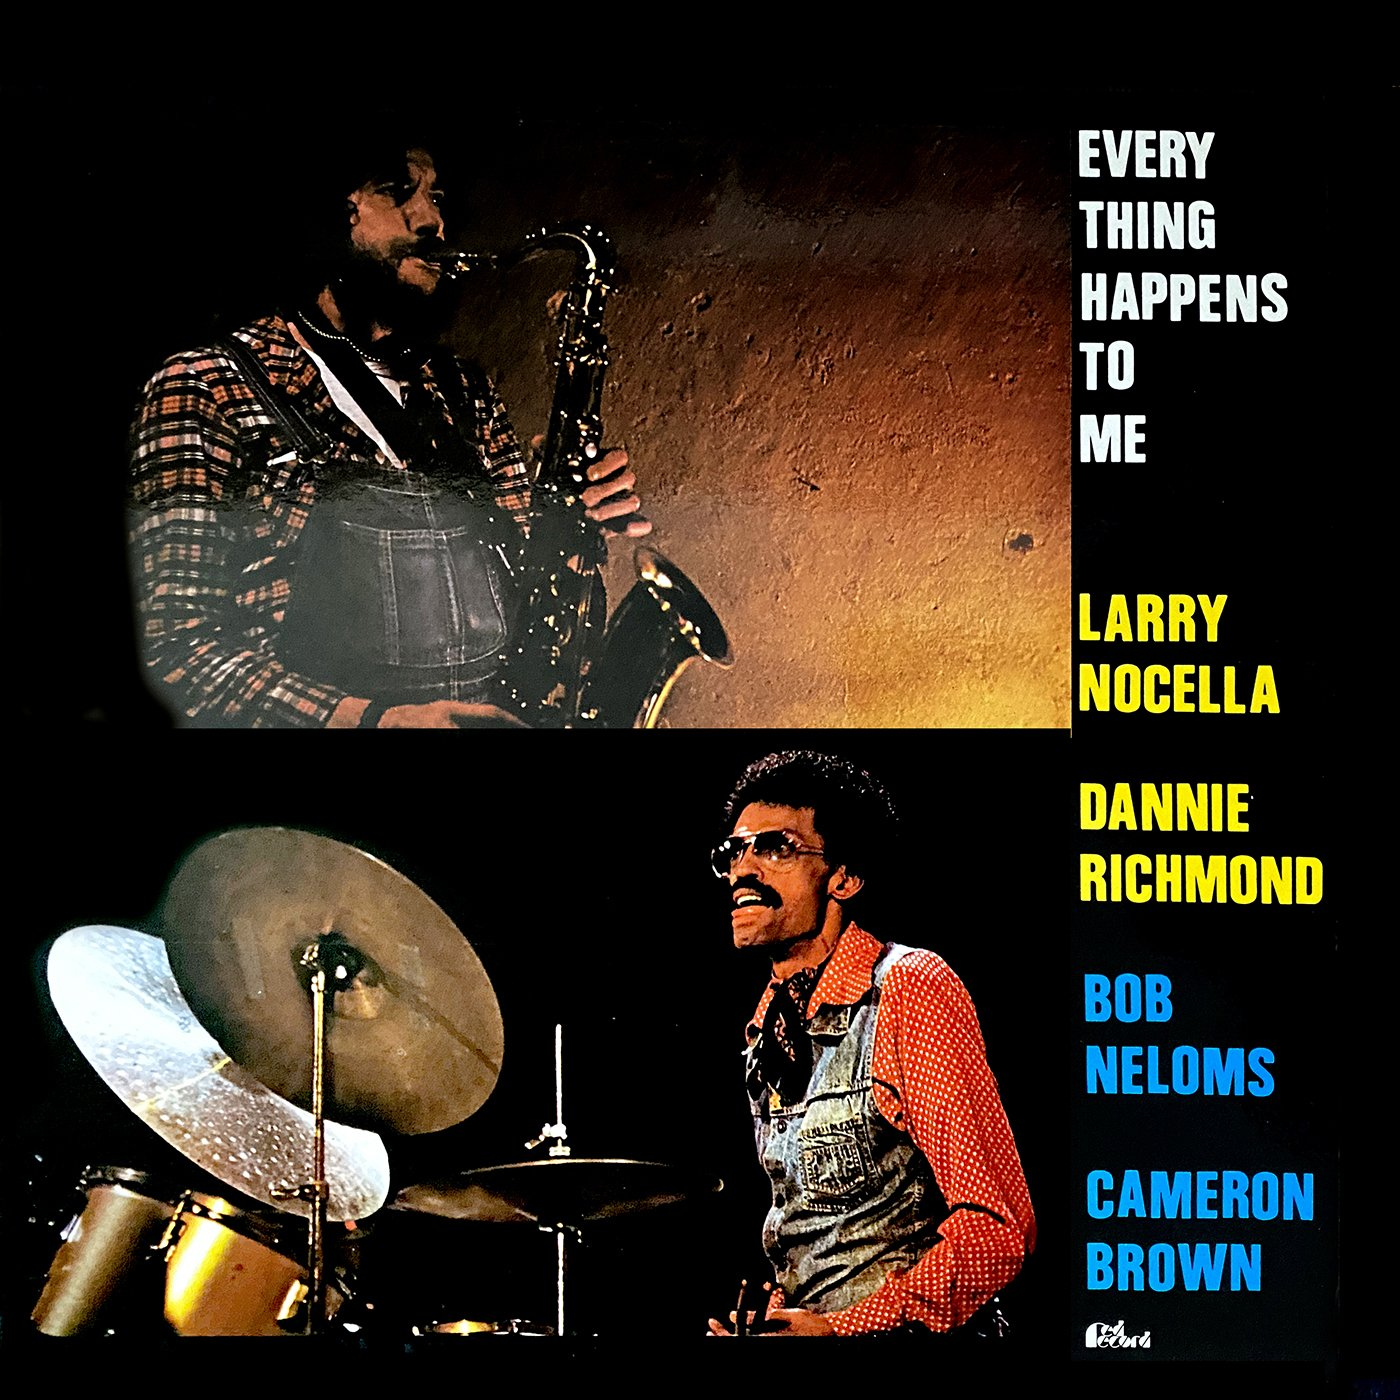 Everything Happens To Me - Larry Nocella